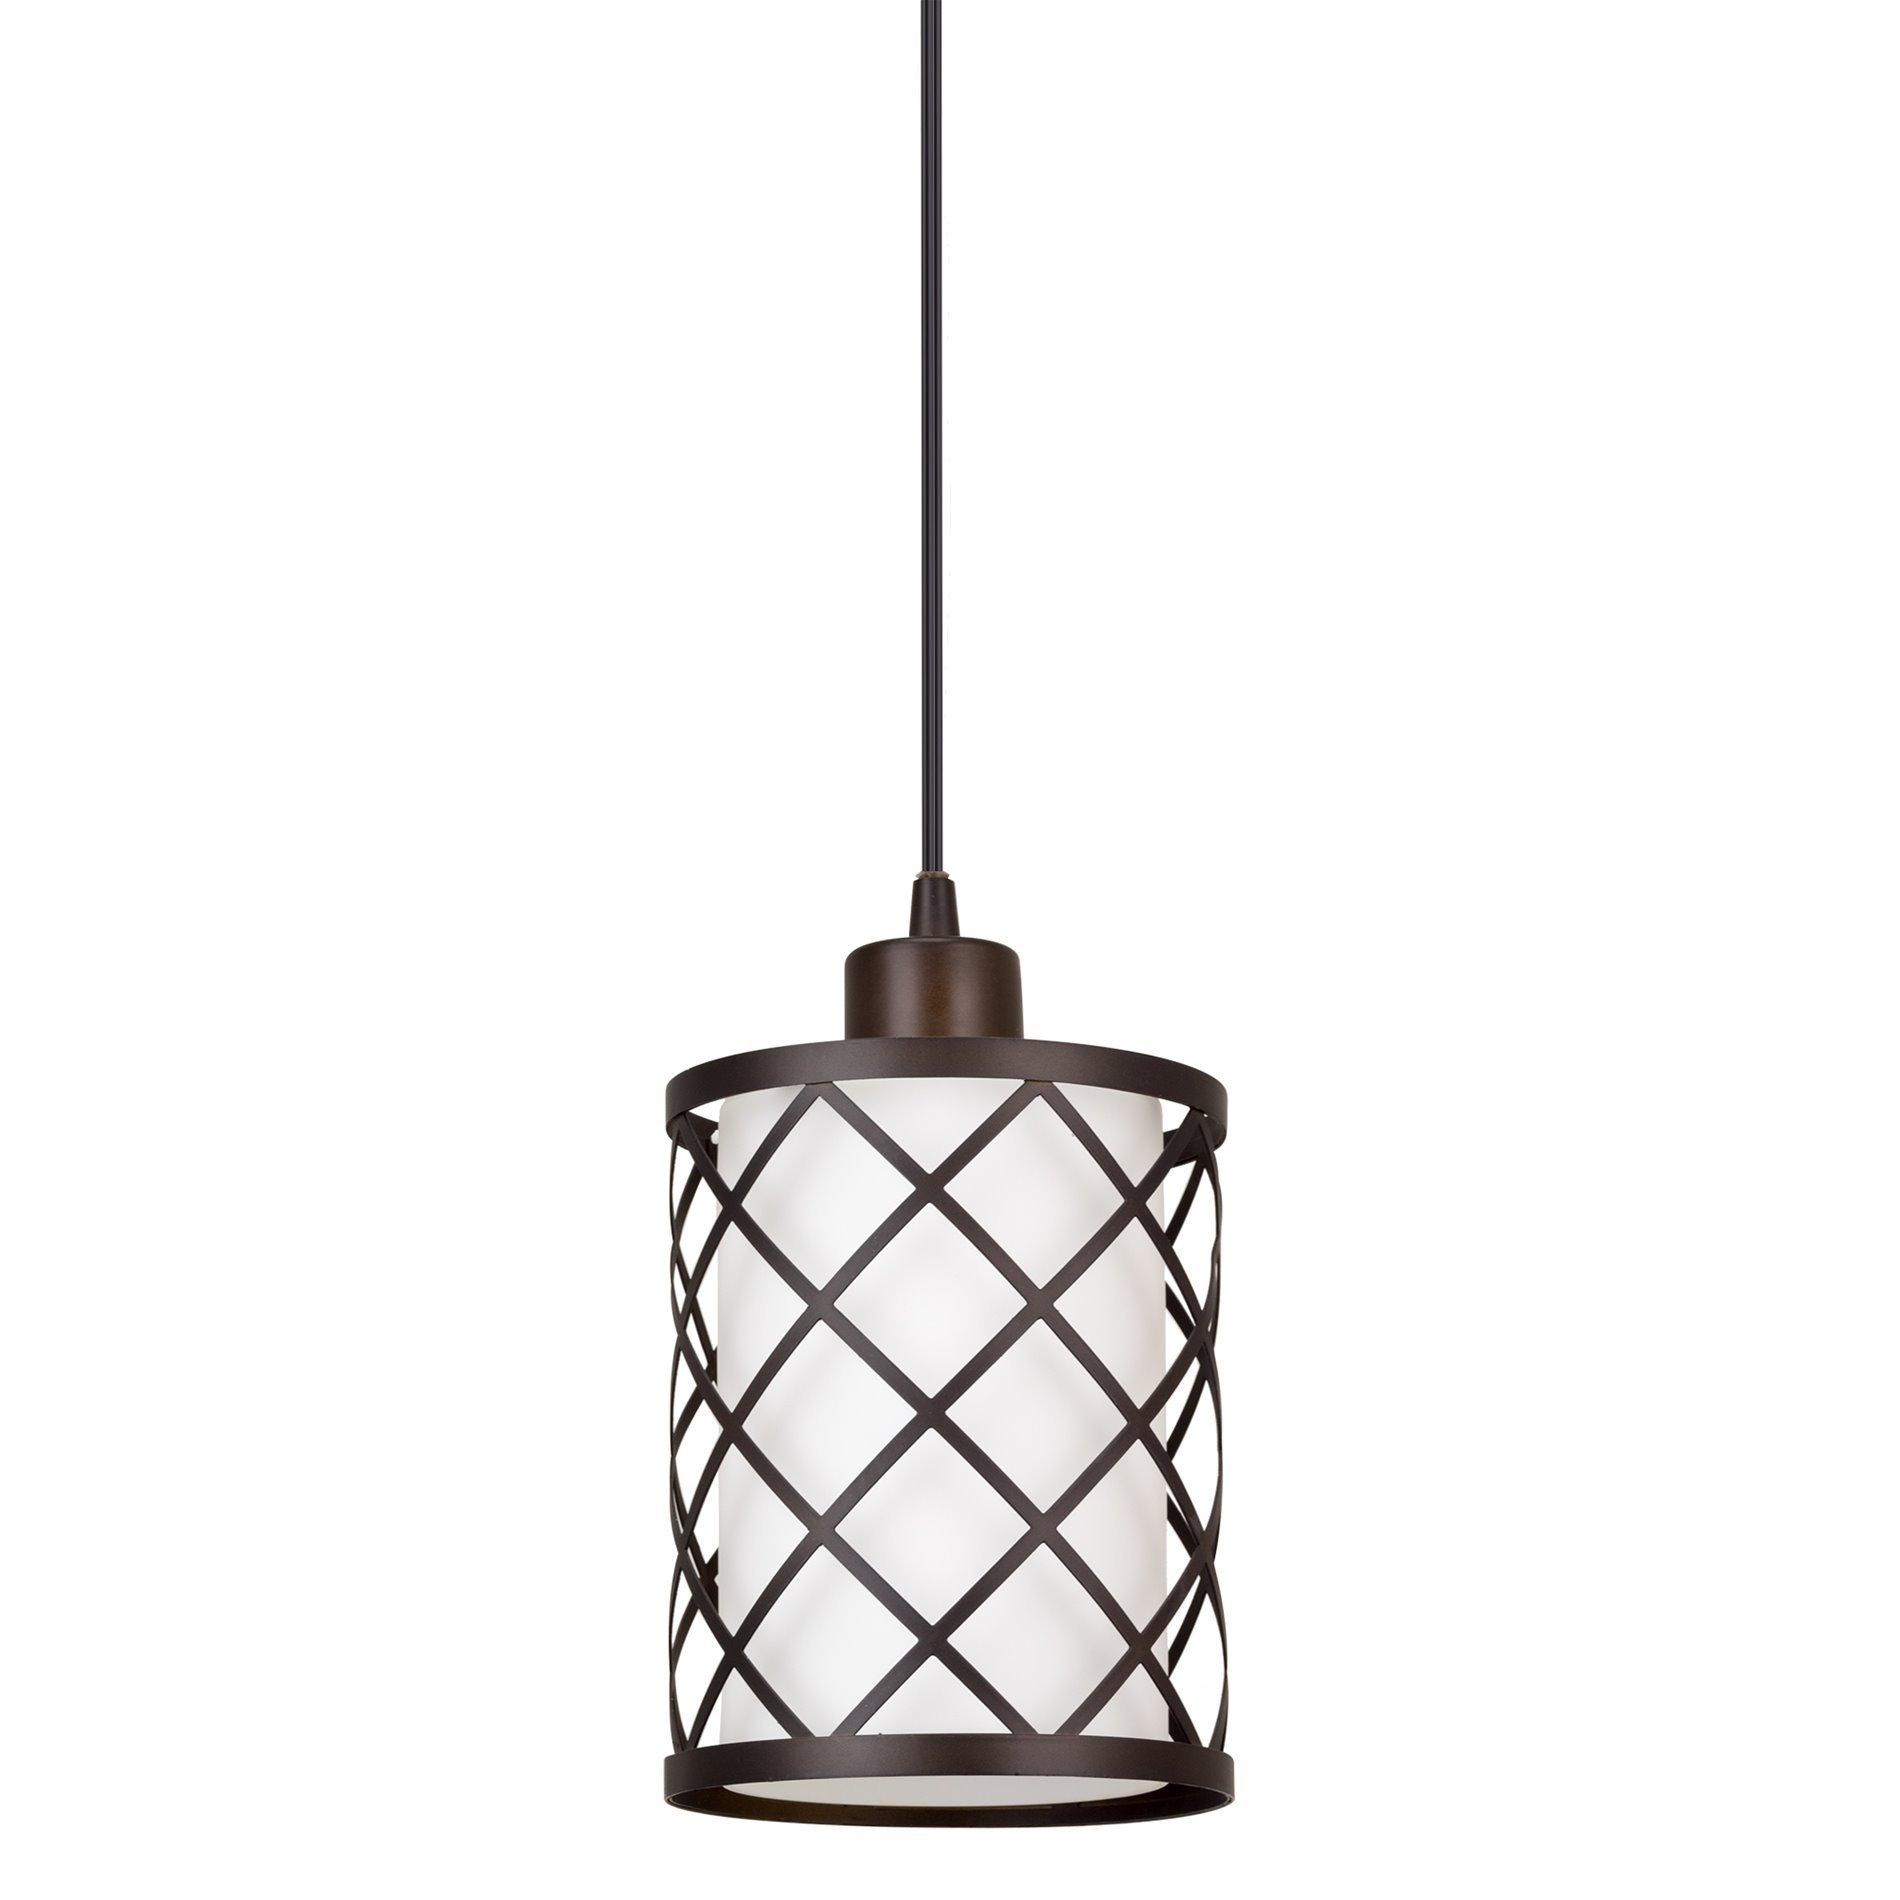 Kira Home Harper 10'' Modern Pendant Light + Outer Lattice Metal Shade + Inner Glass Shade, Adjustable Wire, Oil-Rubbed Bronze Finish